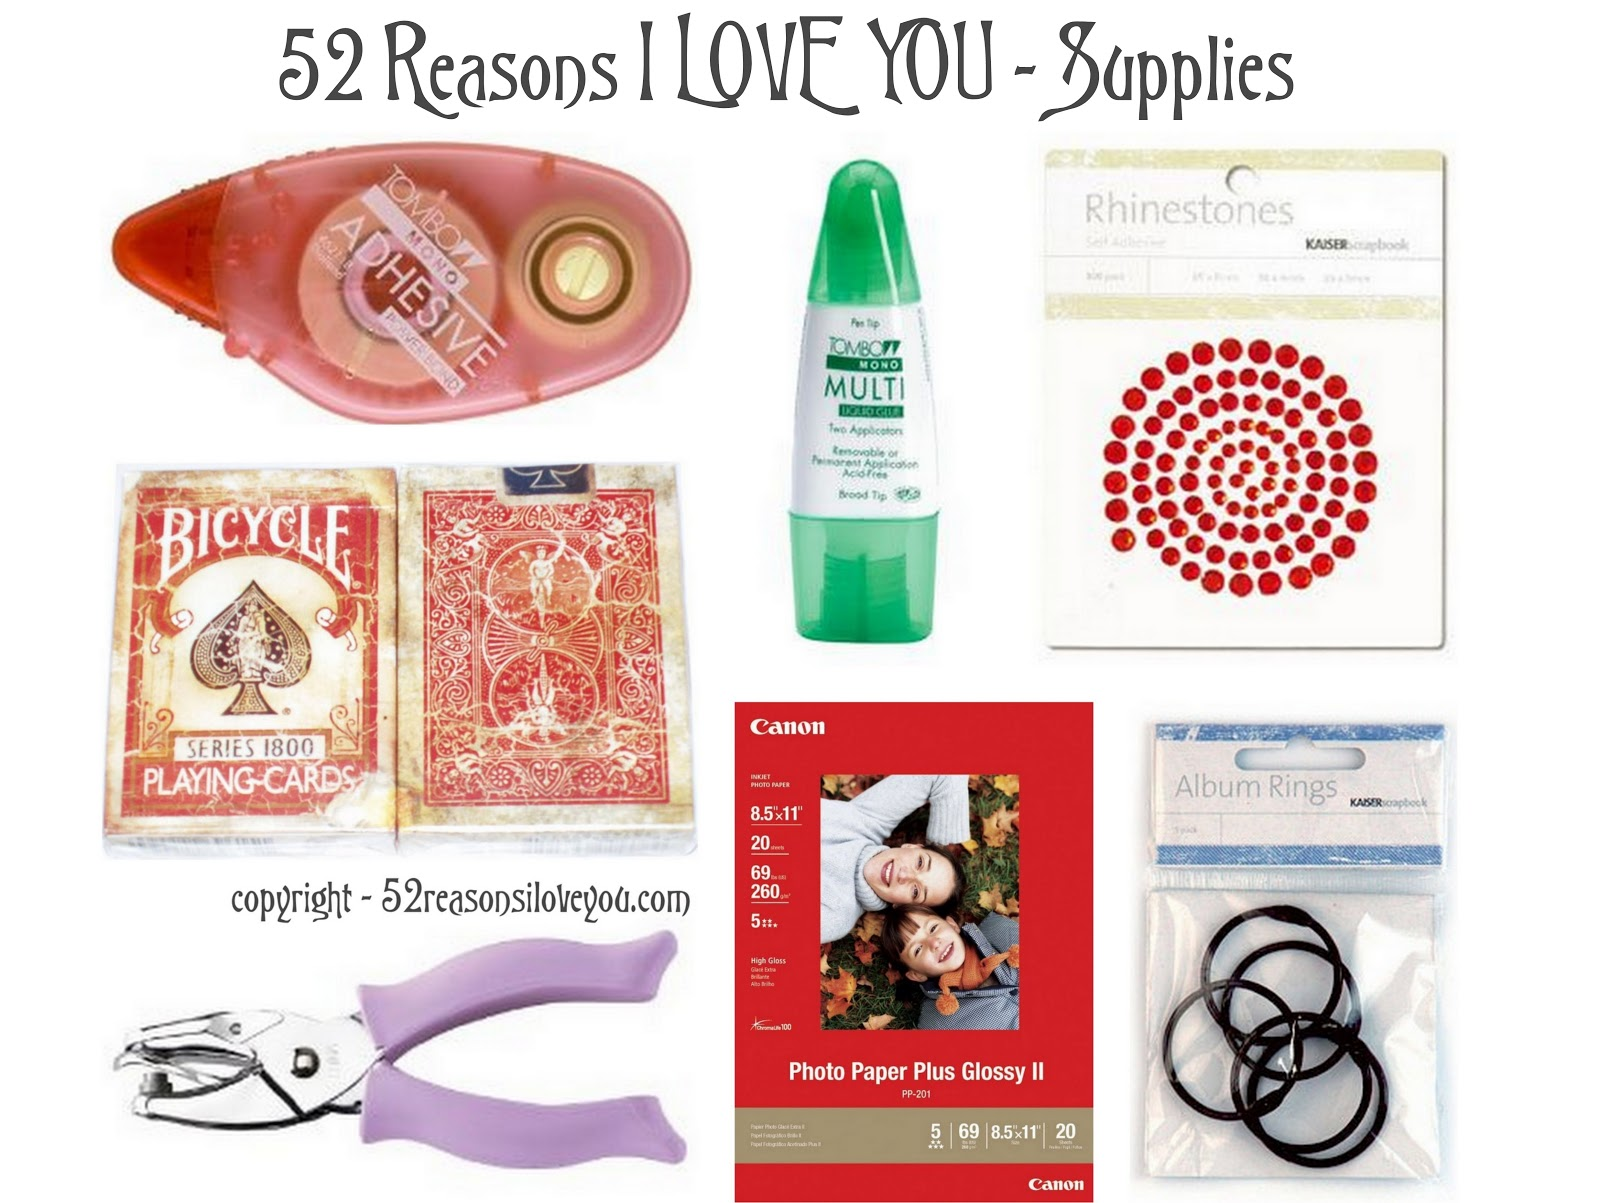 52 reasons why i love you template playbestonlinegames for 52 reasons why i love you cards templates free